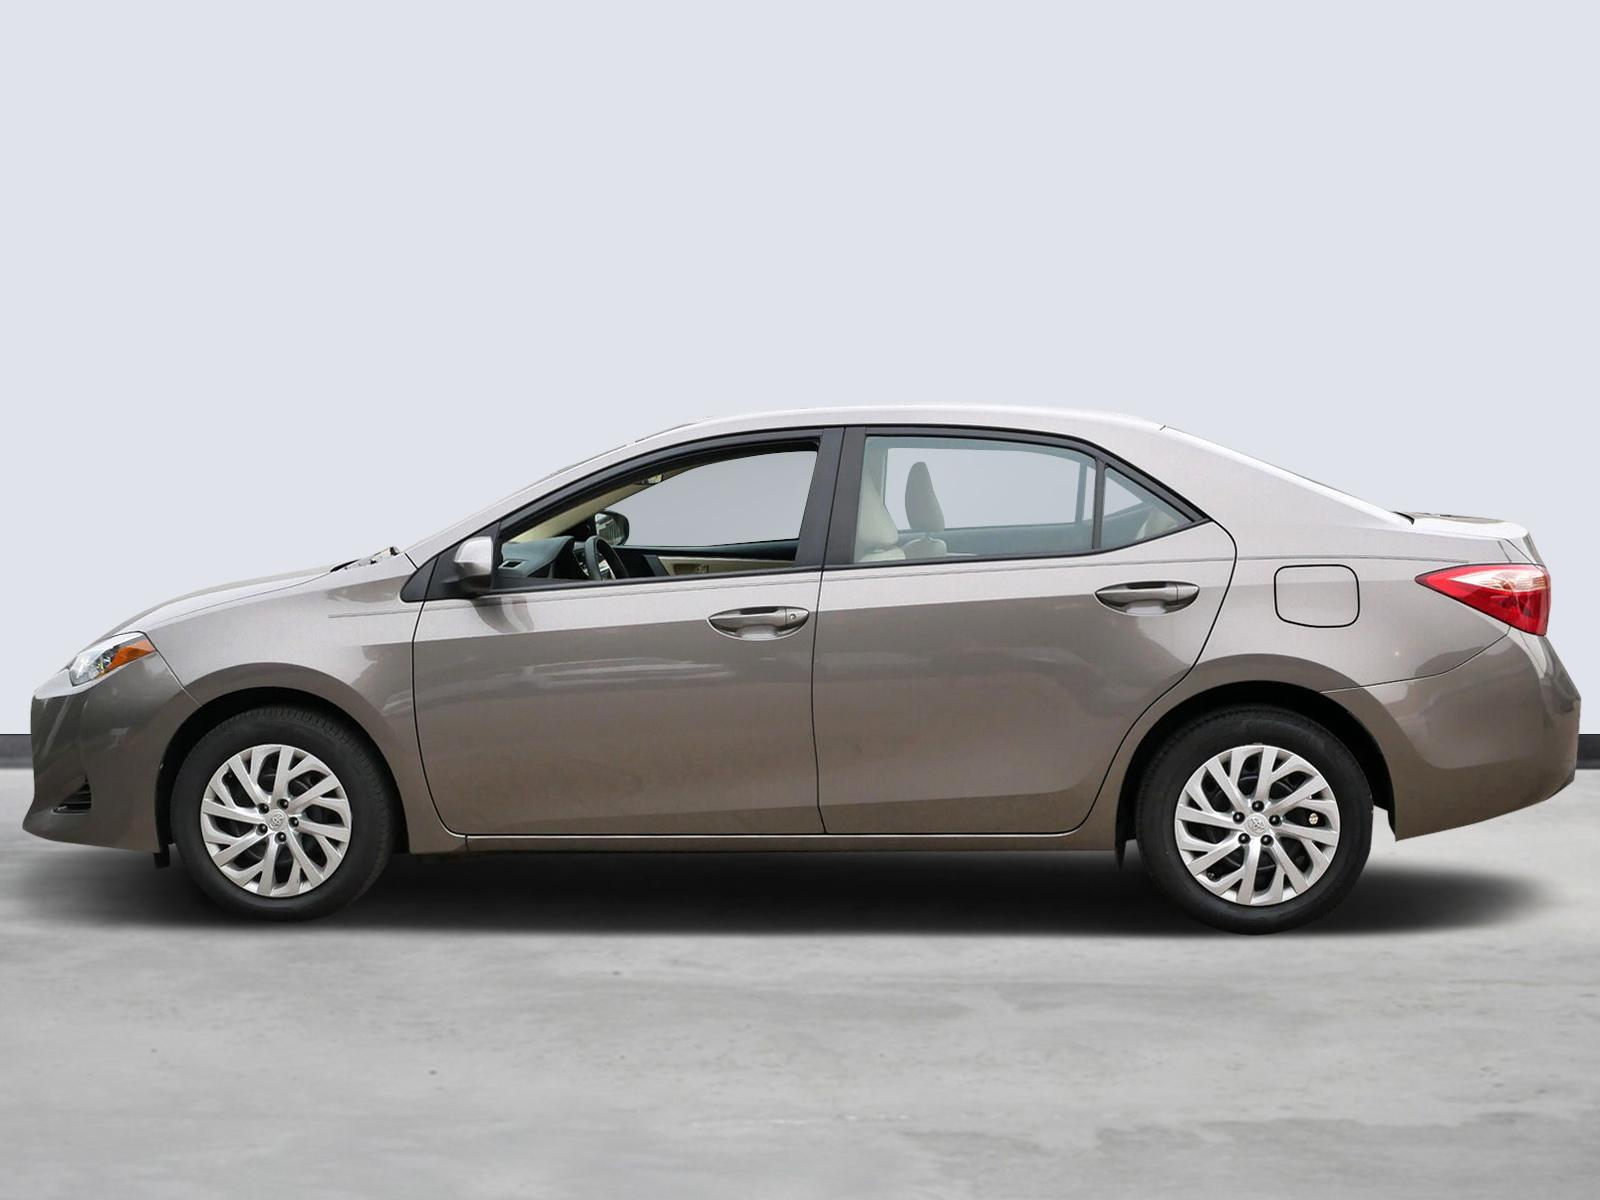 Used 2018 Toyota Corolla L with VIN 2T1BURHE9JC061596 for sale in Minneapolis, Minnesota